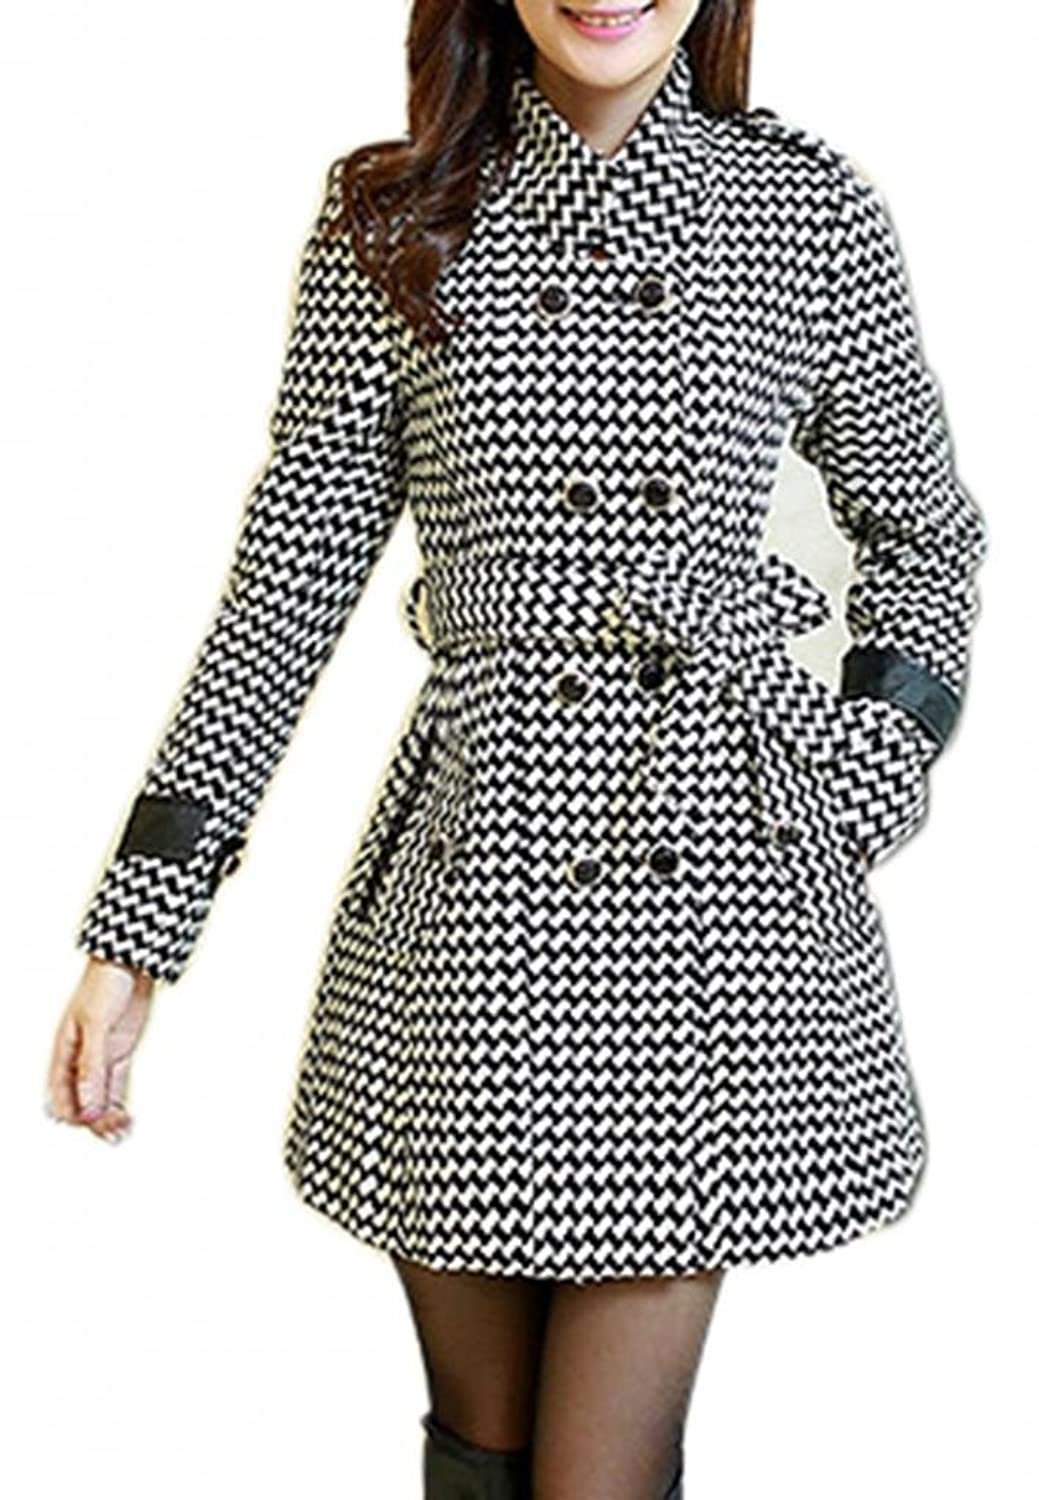 J-SUN-7 Women's Double Breasted Houndstooth Funnel-Neck Wool Coats